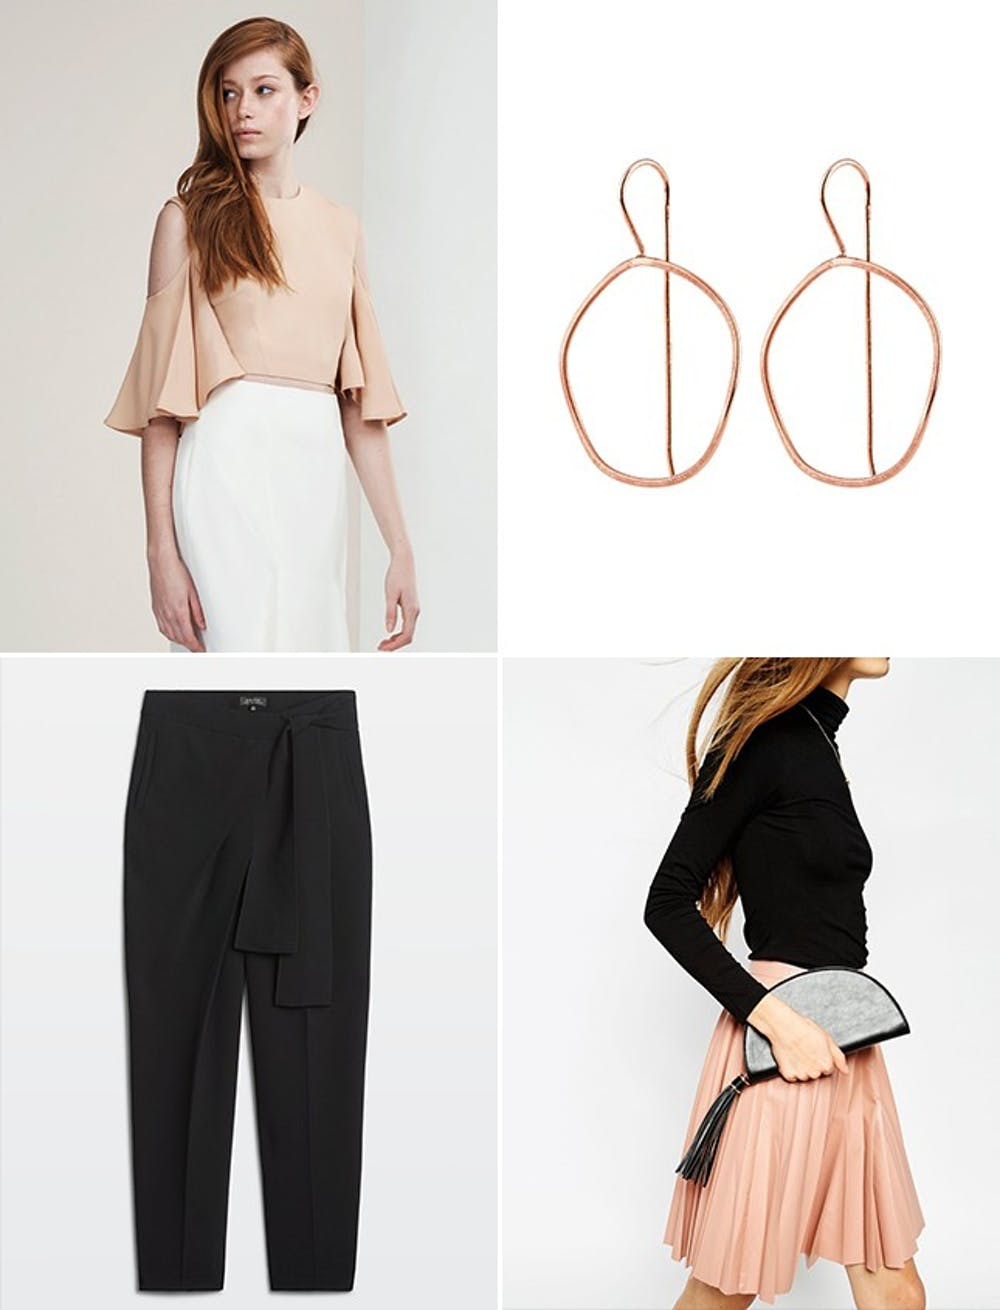 what-to-wear-for-a-spring-wedding-guest-outfit-black-joggers-pants-tan-top-earrings-dinner.jpg